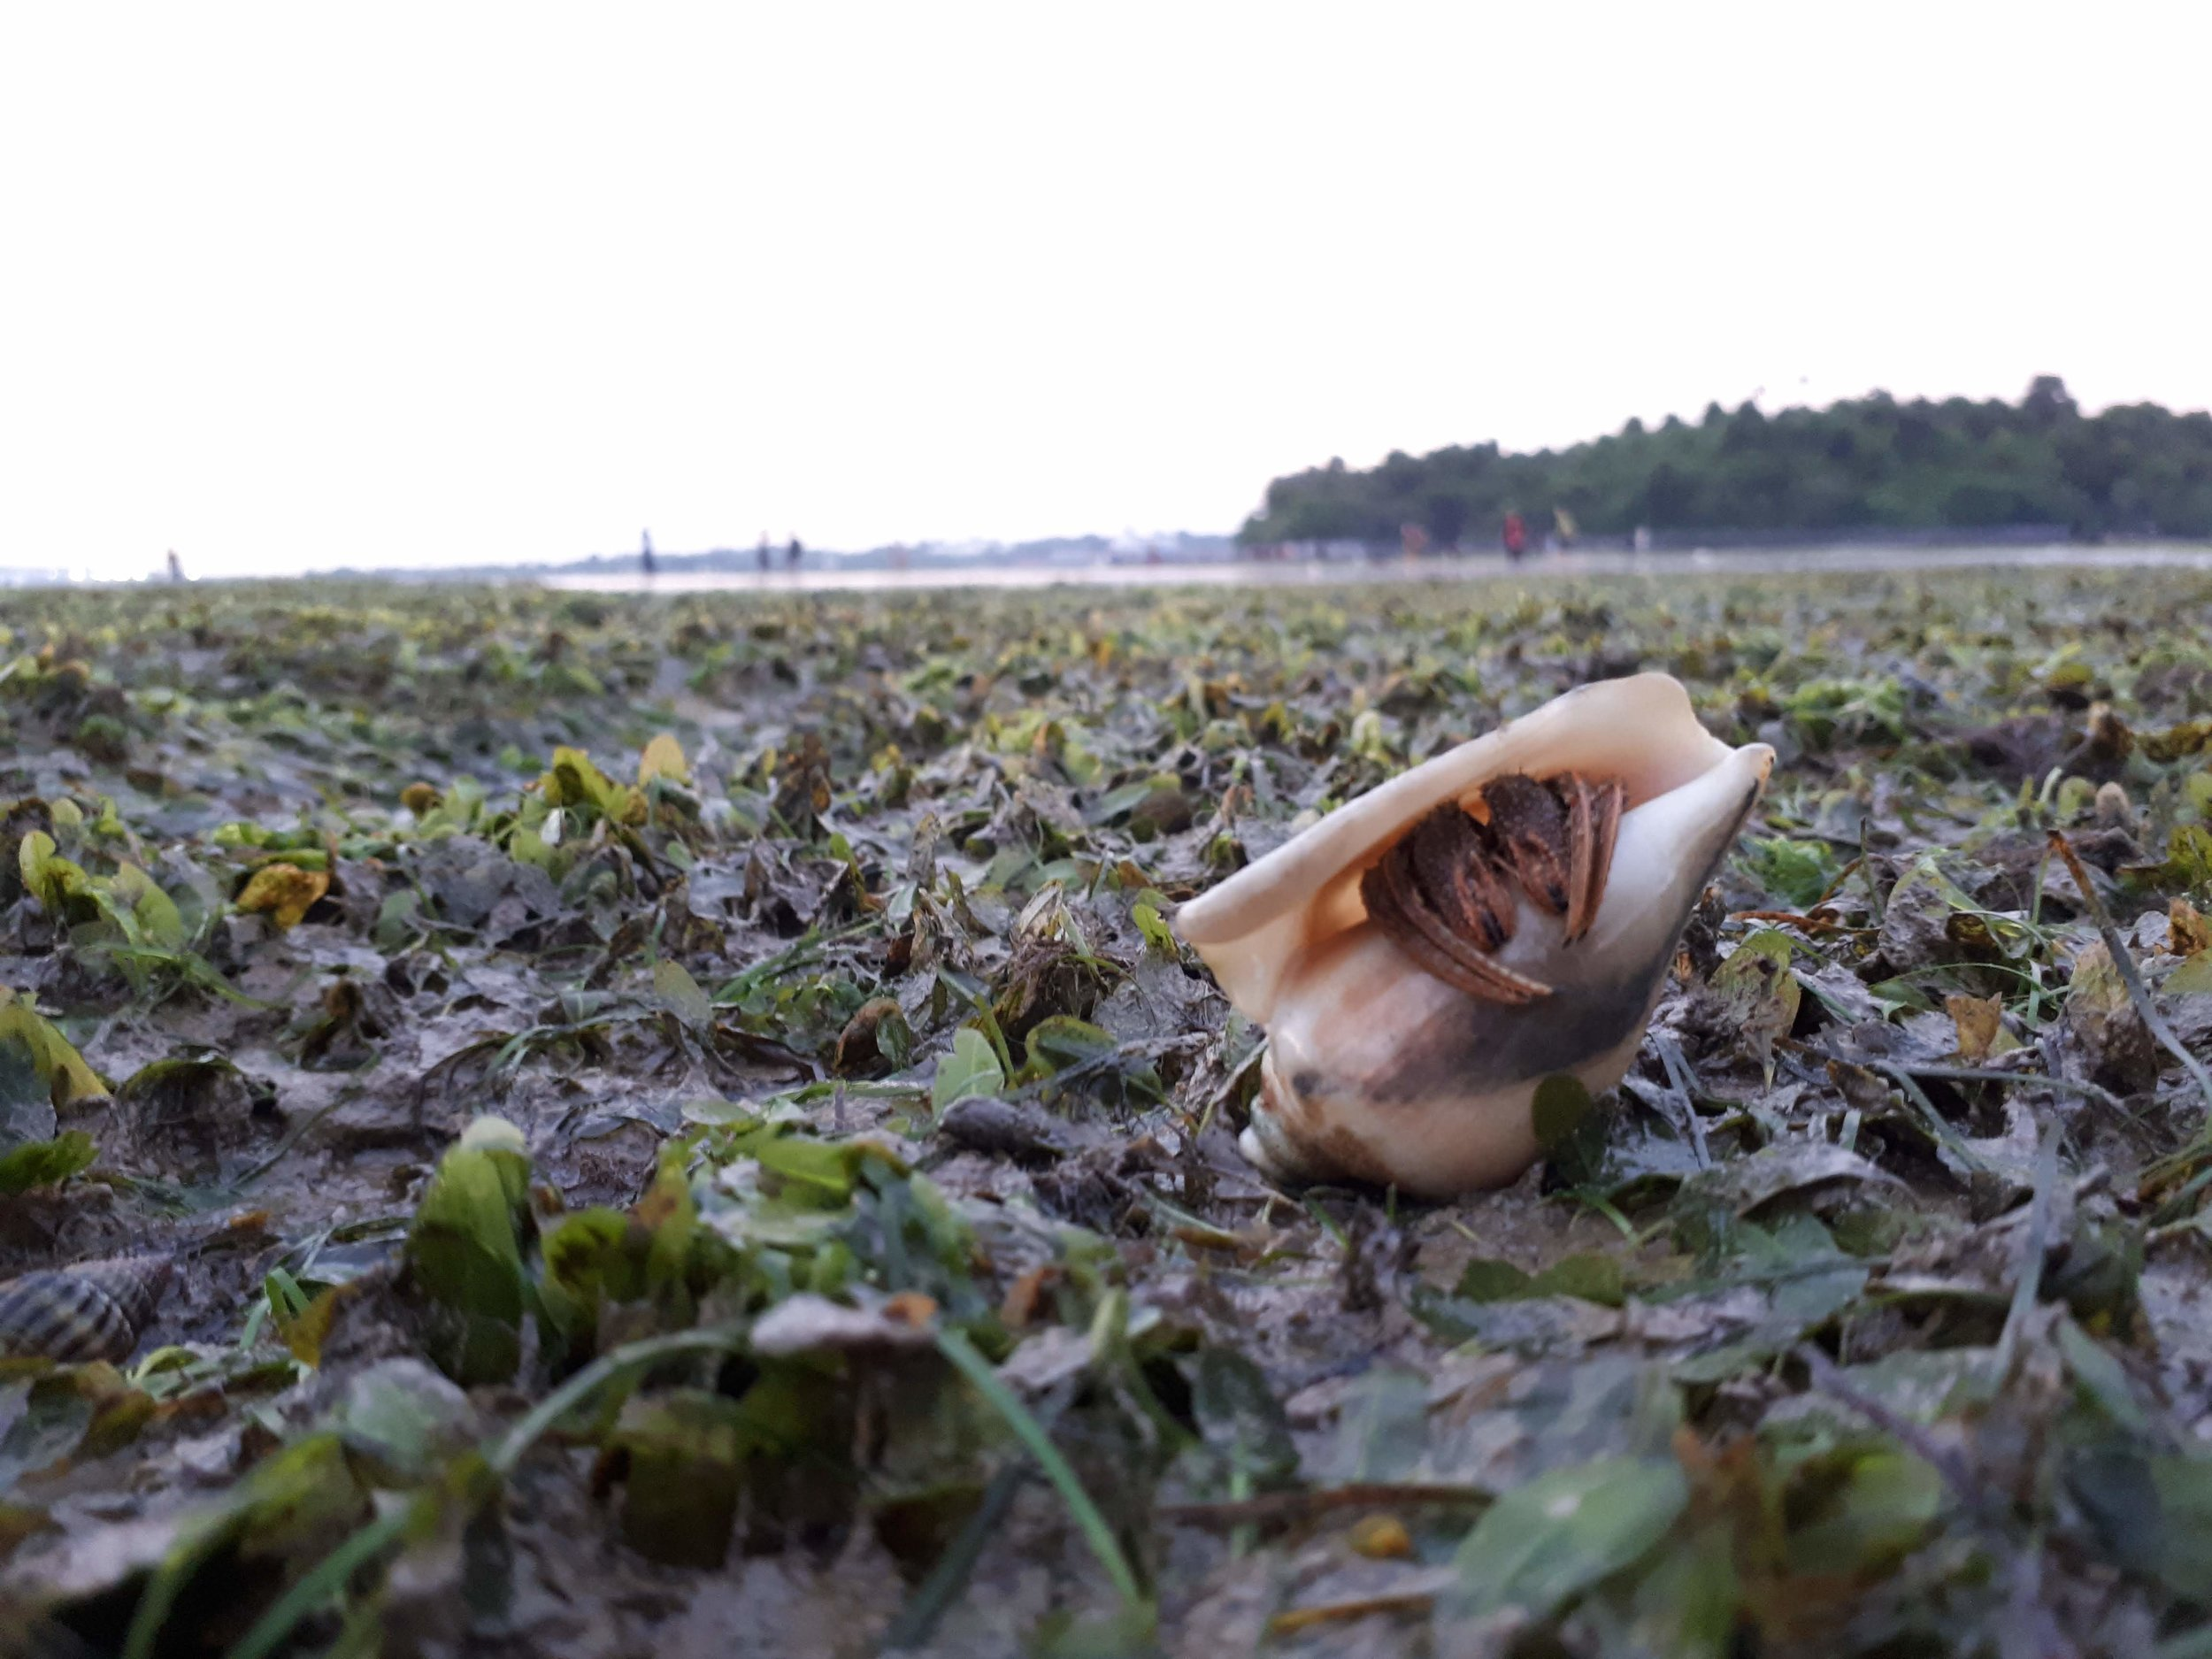 A hermit crab hiding in the seagrass